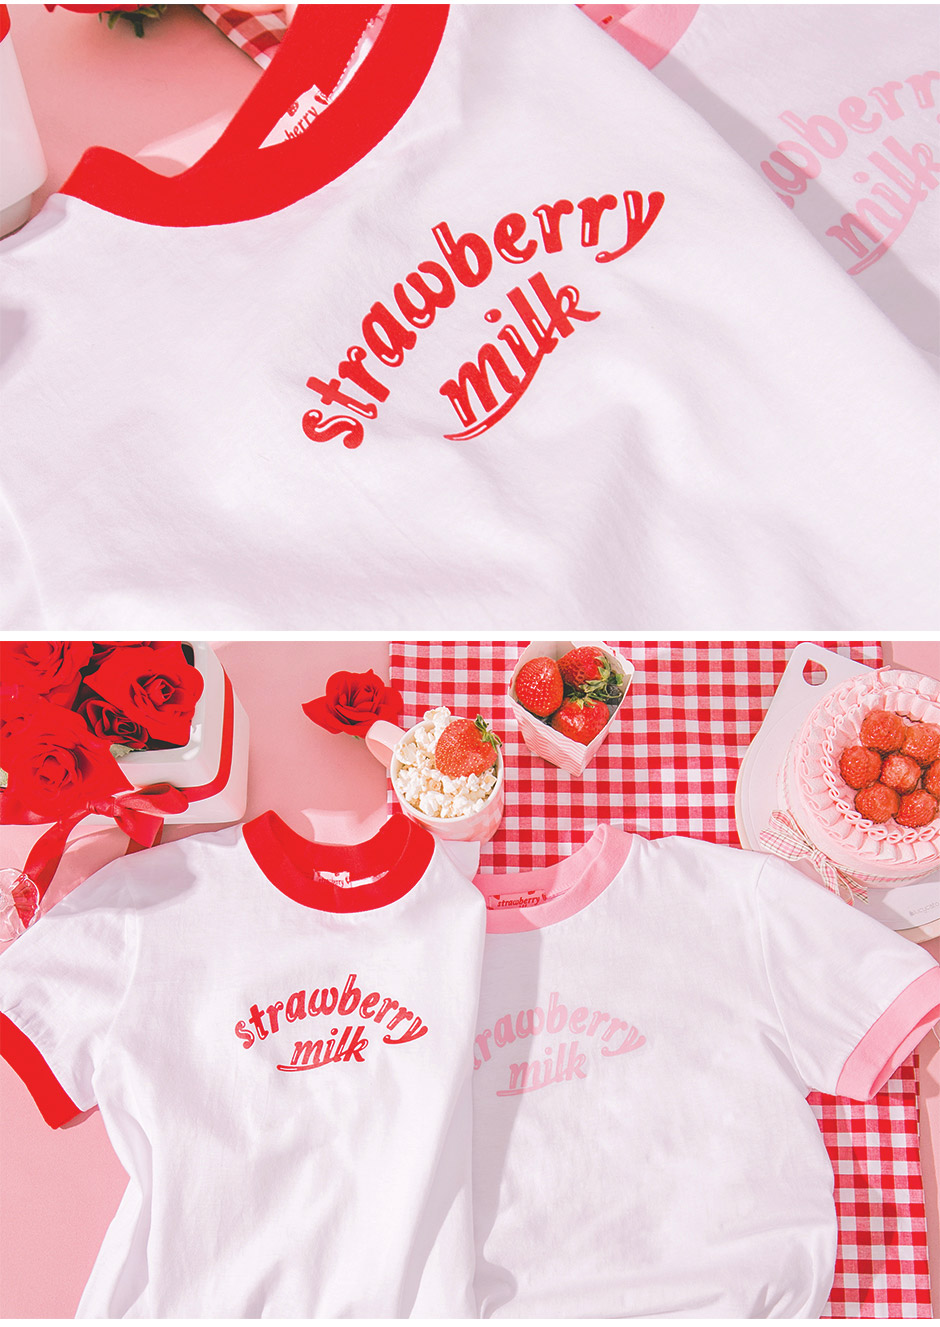 //cdn.nhanh.vn/cdn/store/29770/psCT/20180909/8968169/CHUU_Strawberry_Milk_Strawberry_Obsession_Tee_(5).jpg